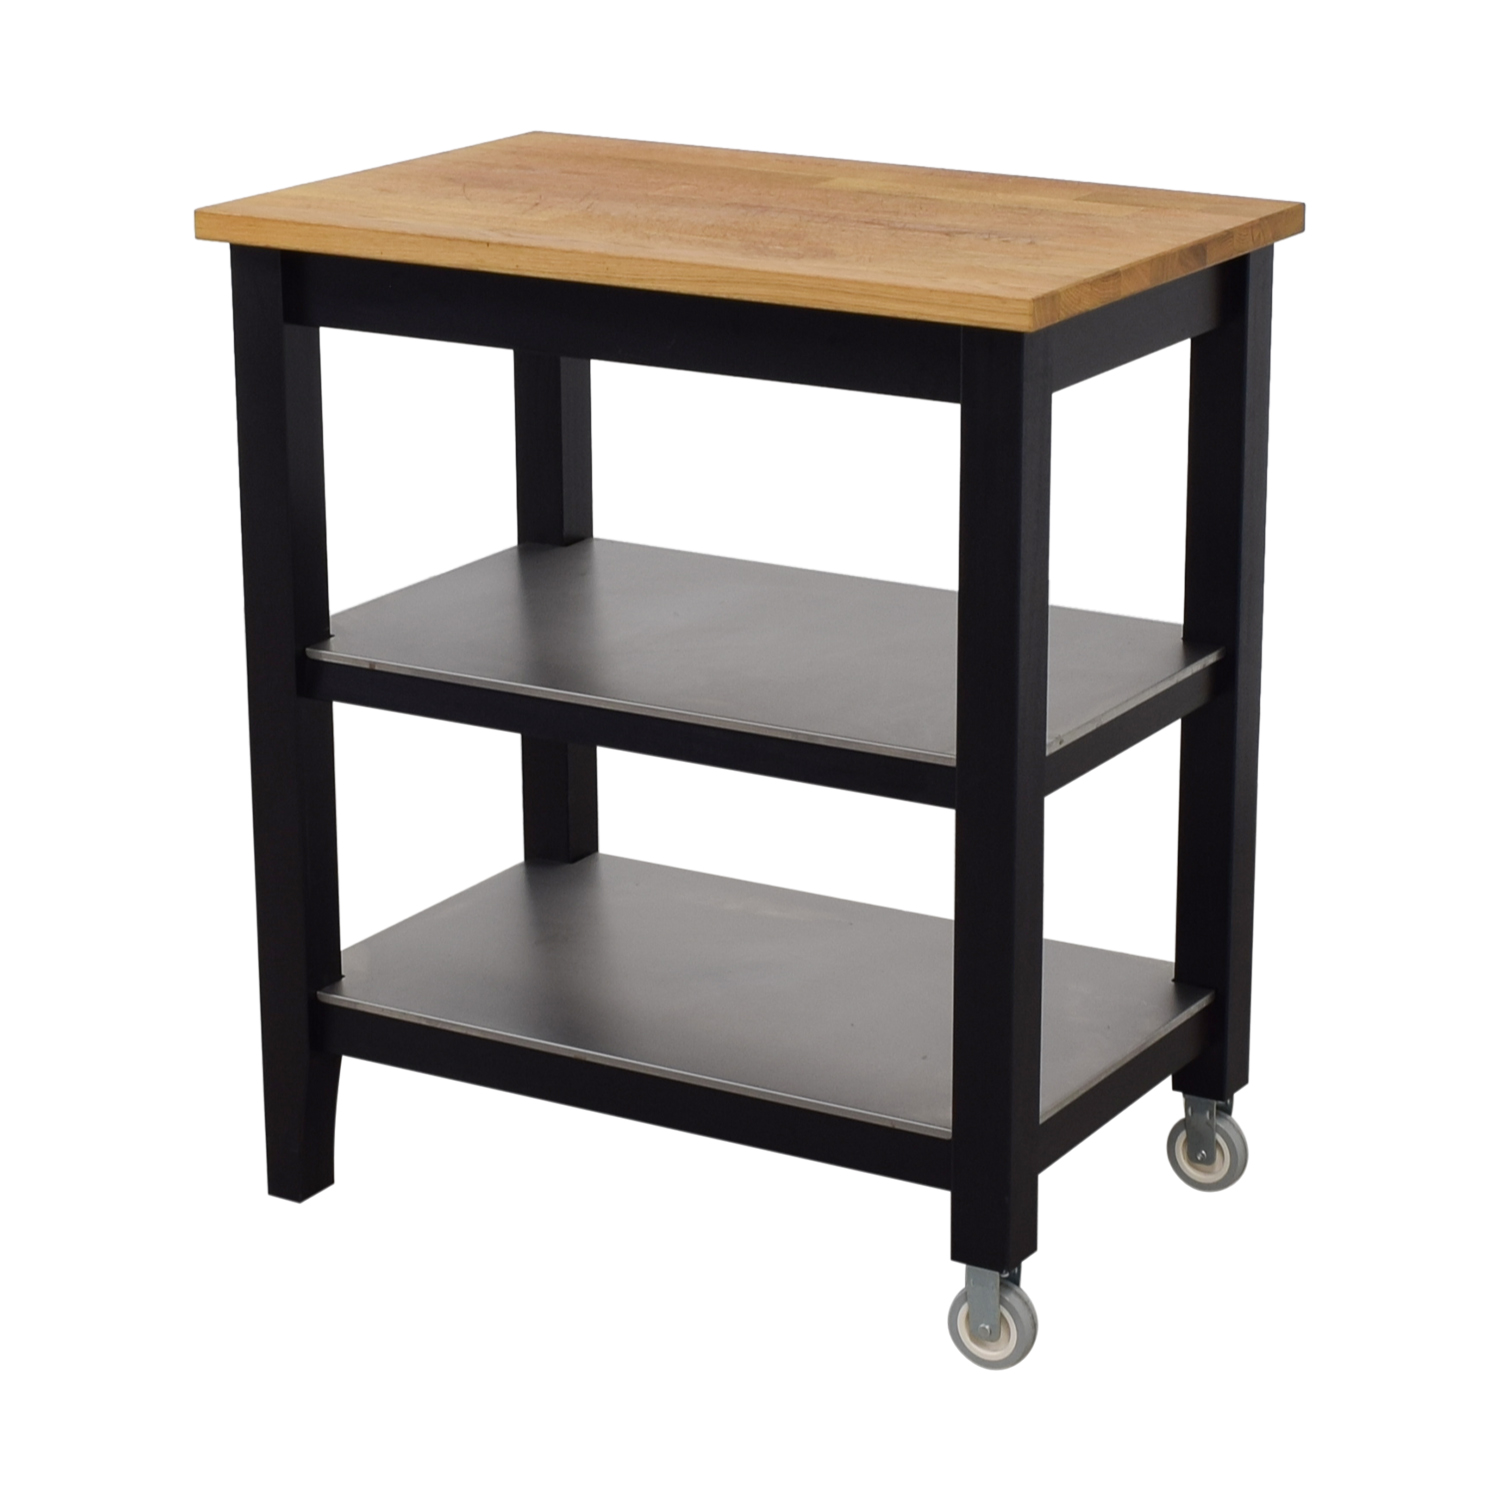 Used Kitchen Island For Sale: IKEA IKEA Stenstorp Wood And Black Kitchen